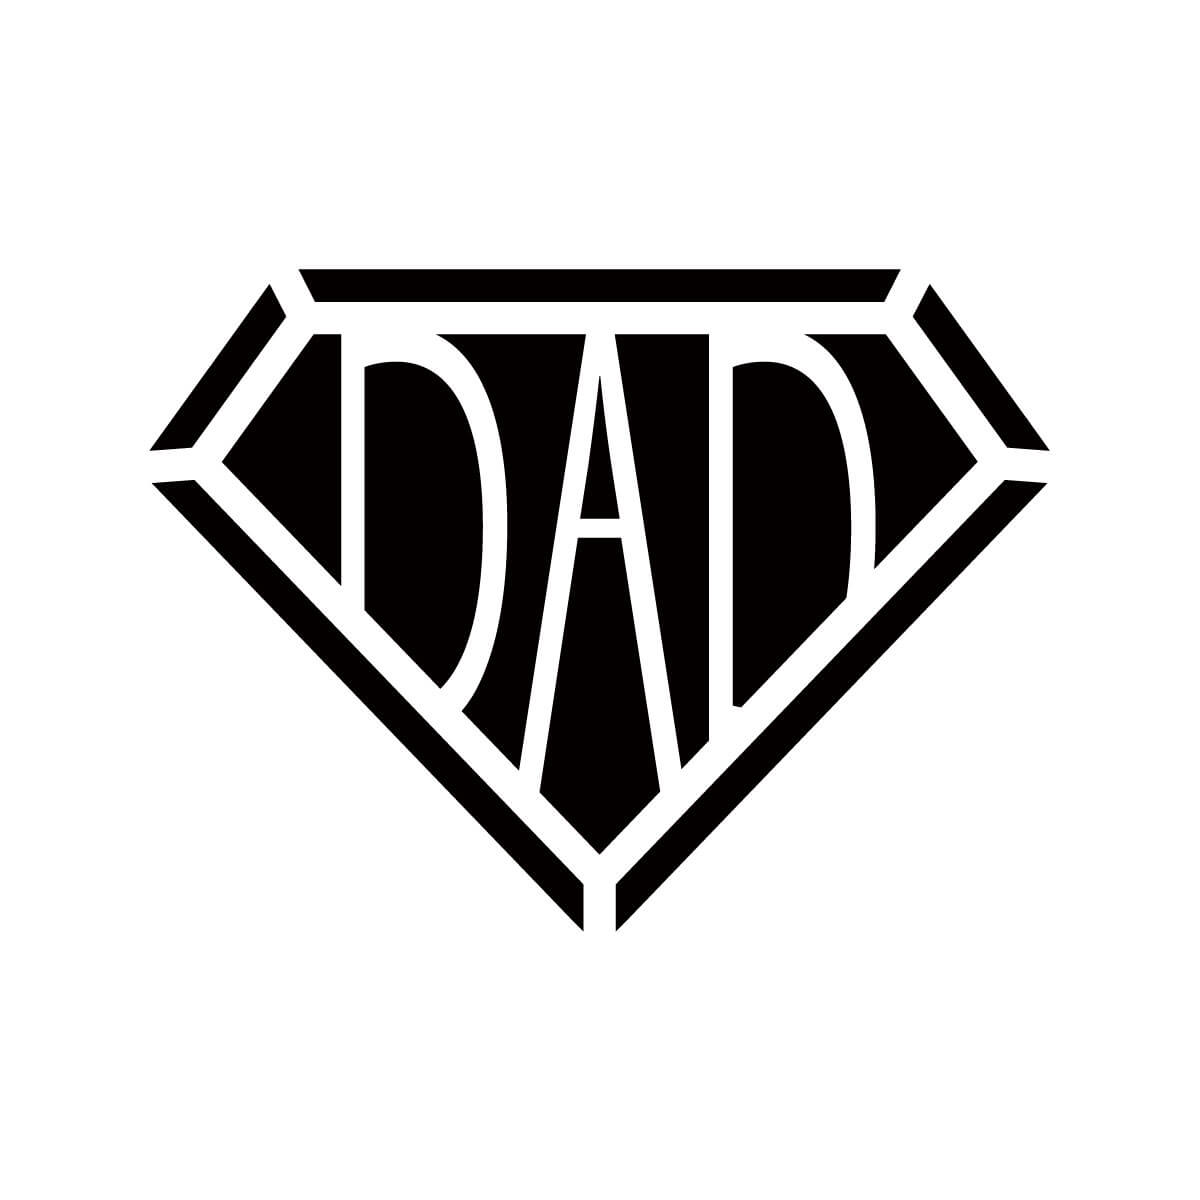 Dadマーク(刻印)